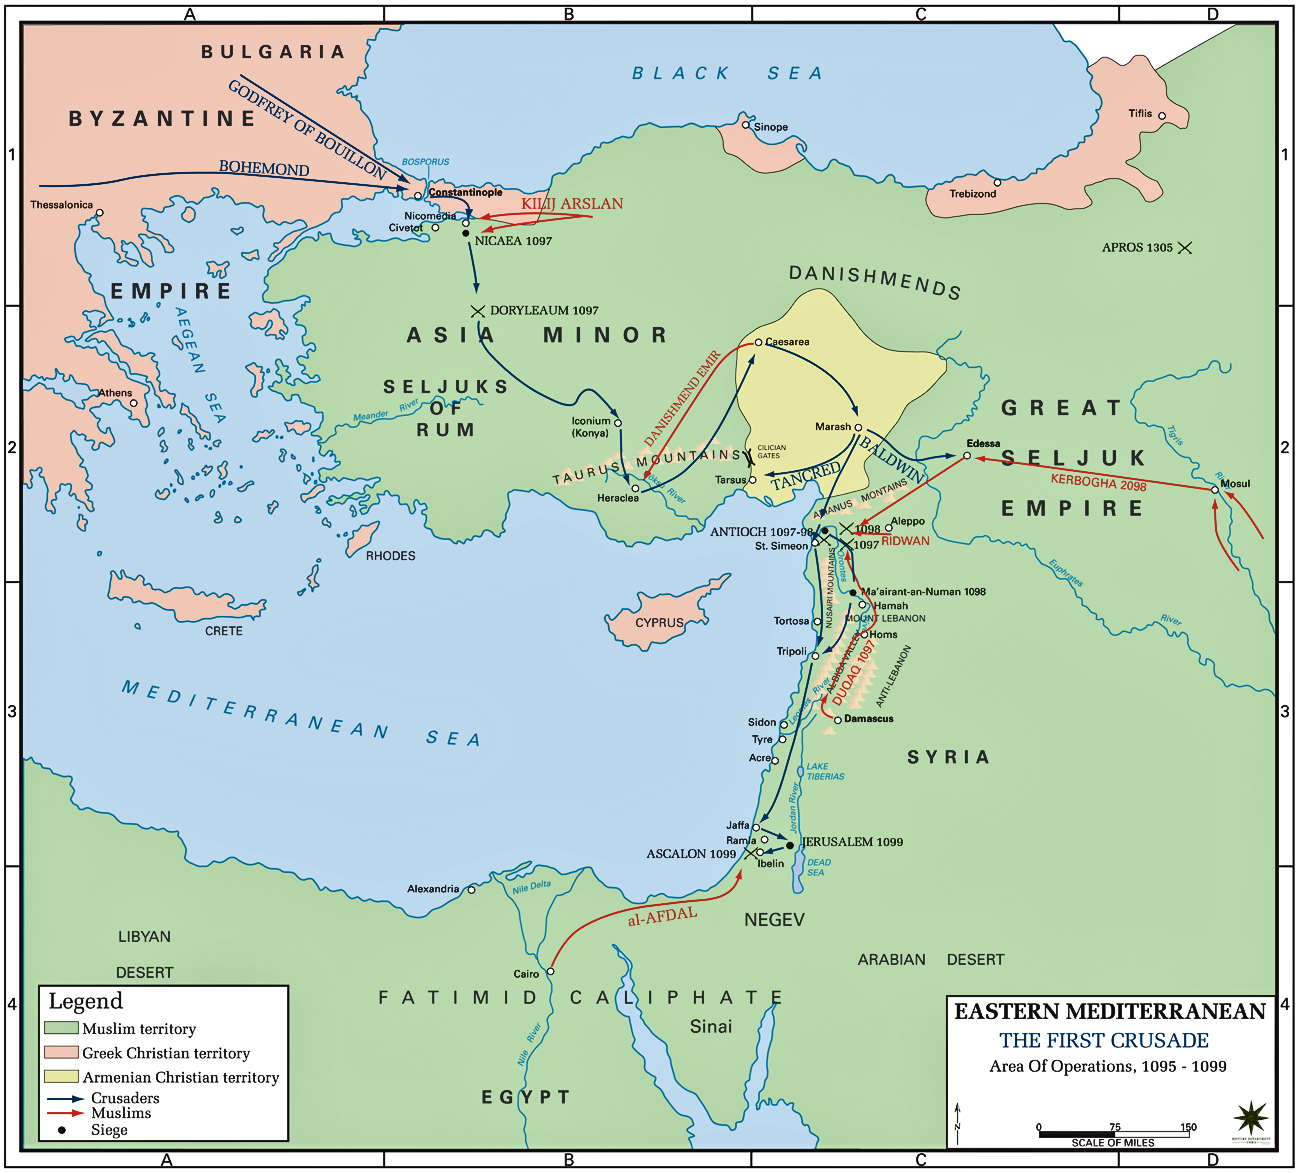 Map of the First Crusade 1095-1099